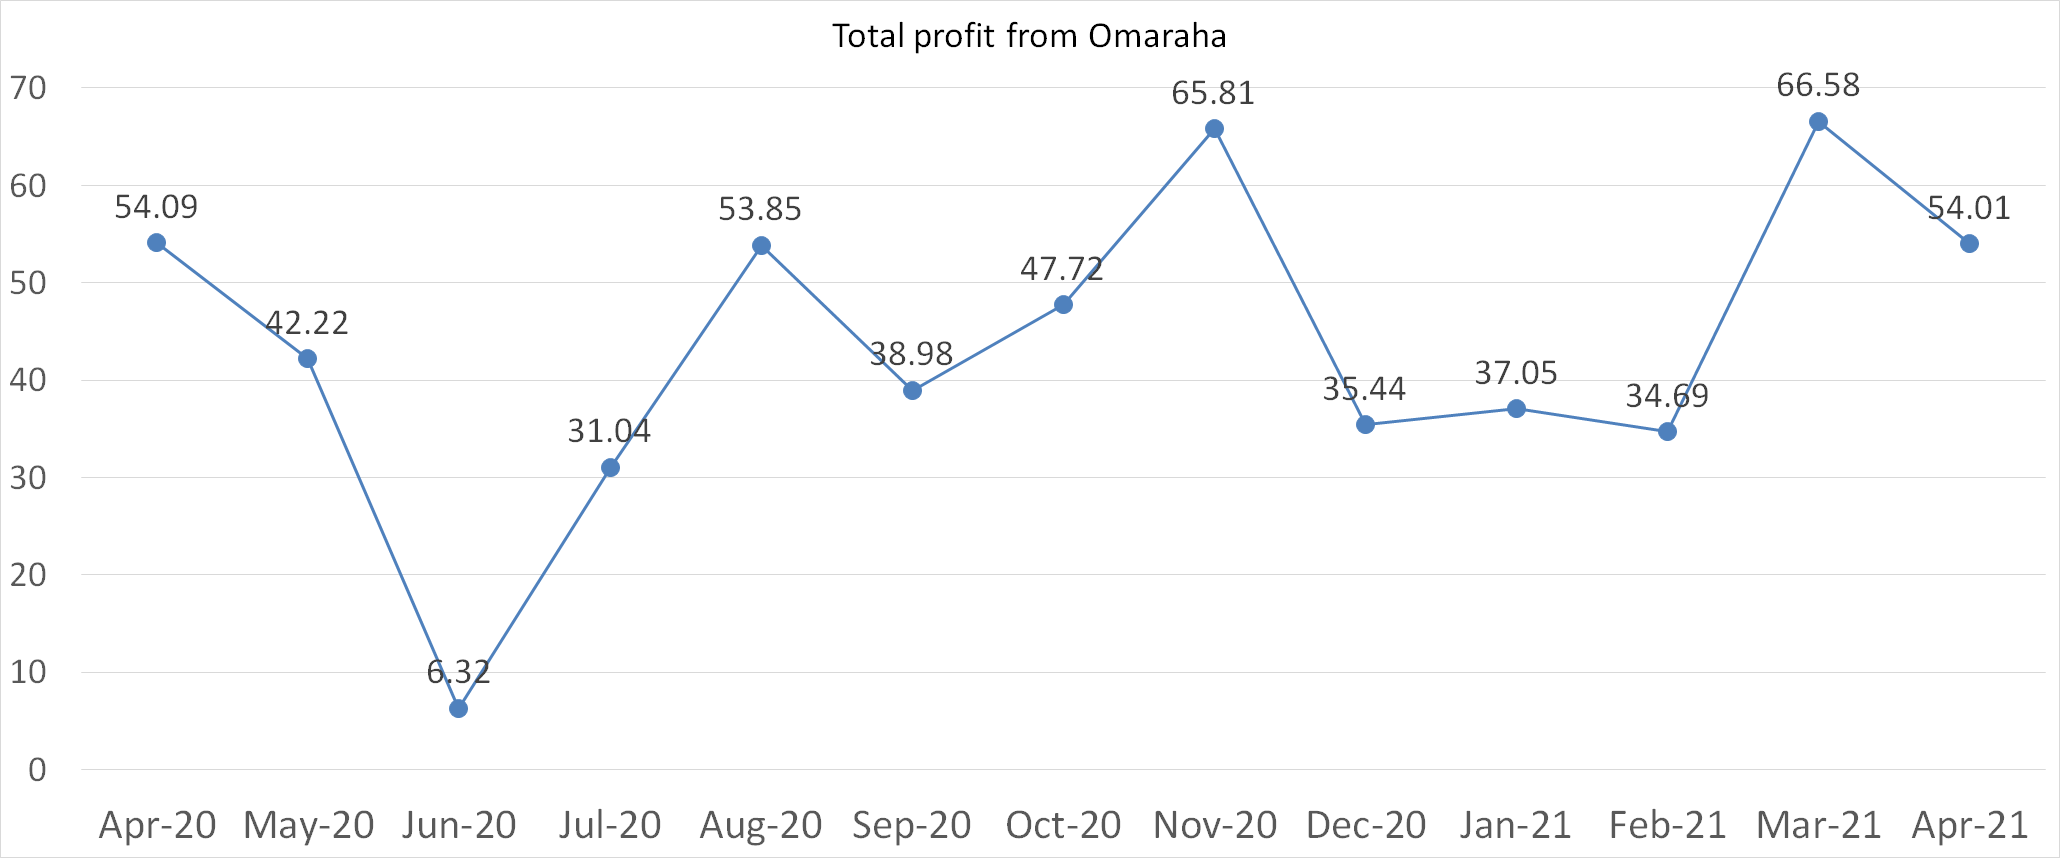 Total profit from Omaraha in April 2021